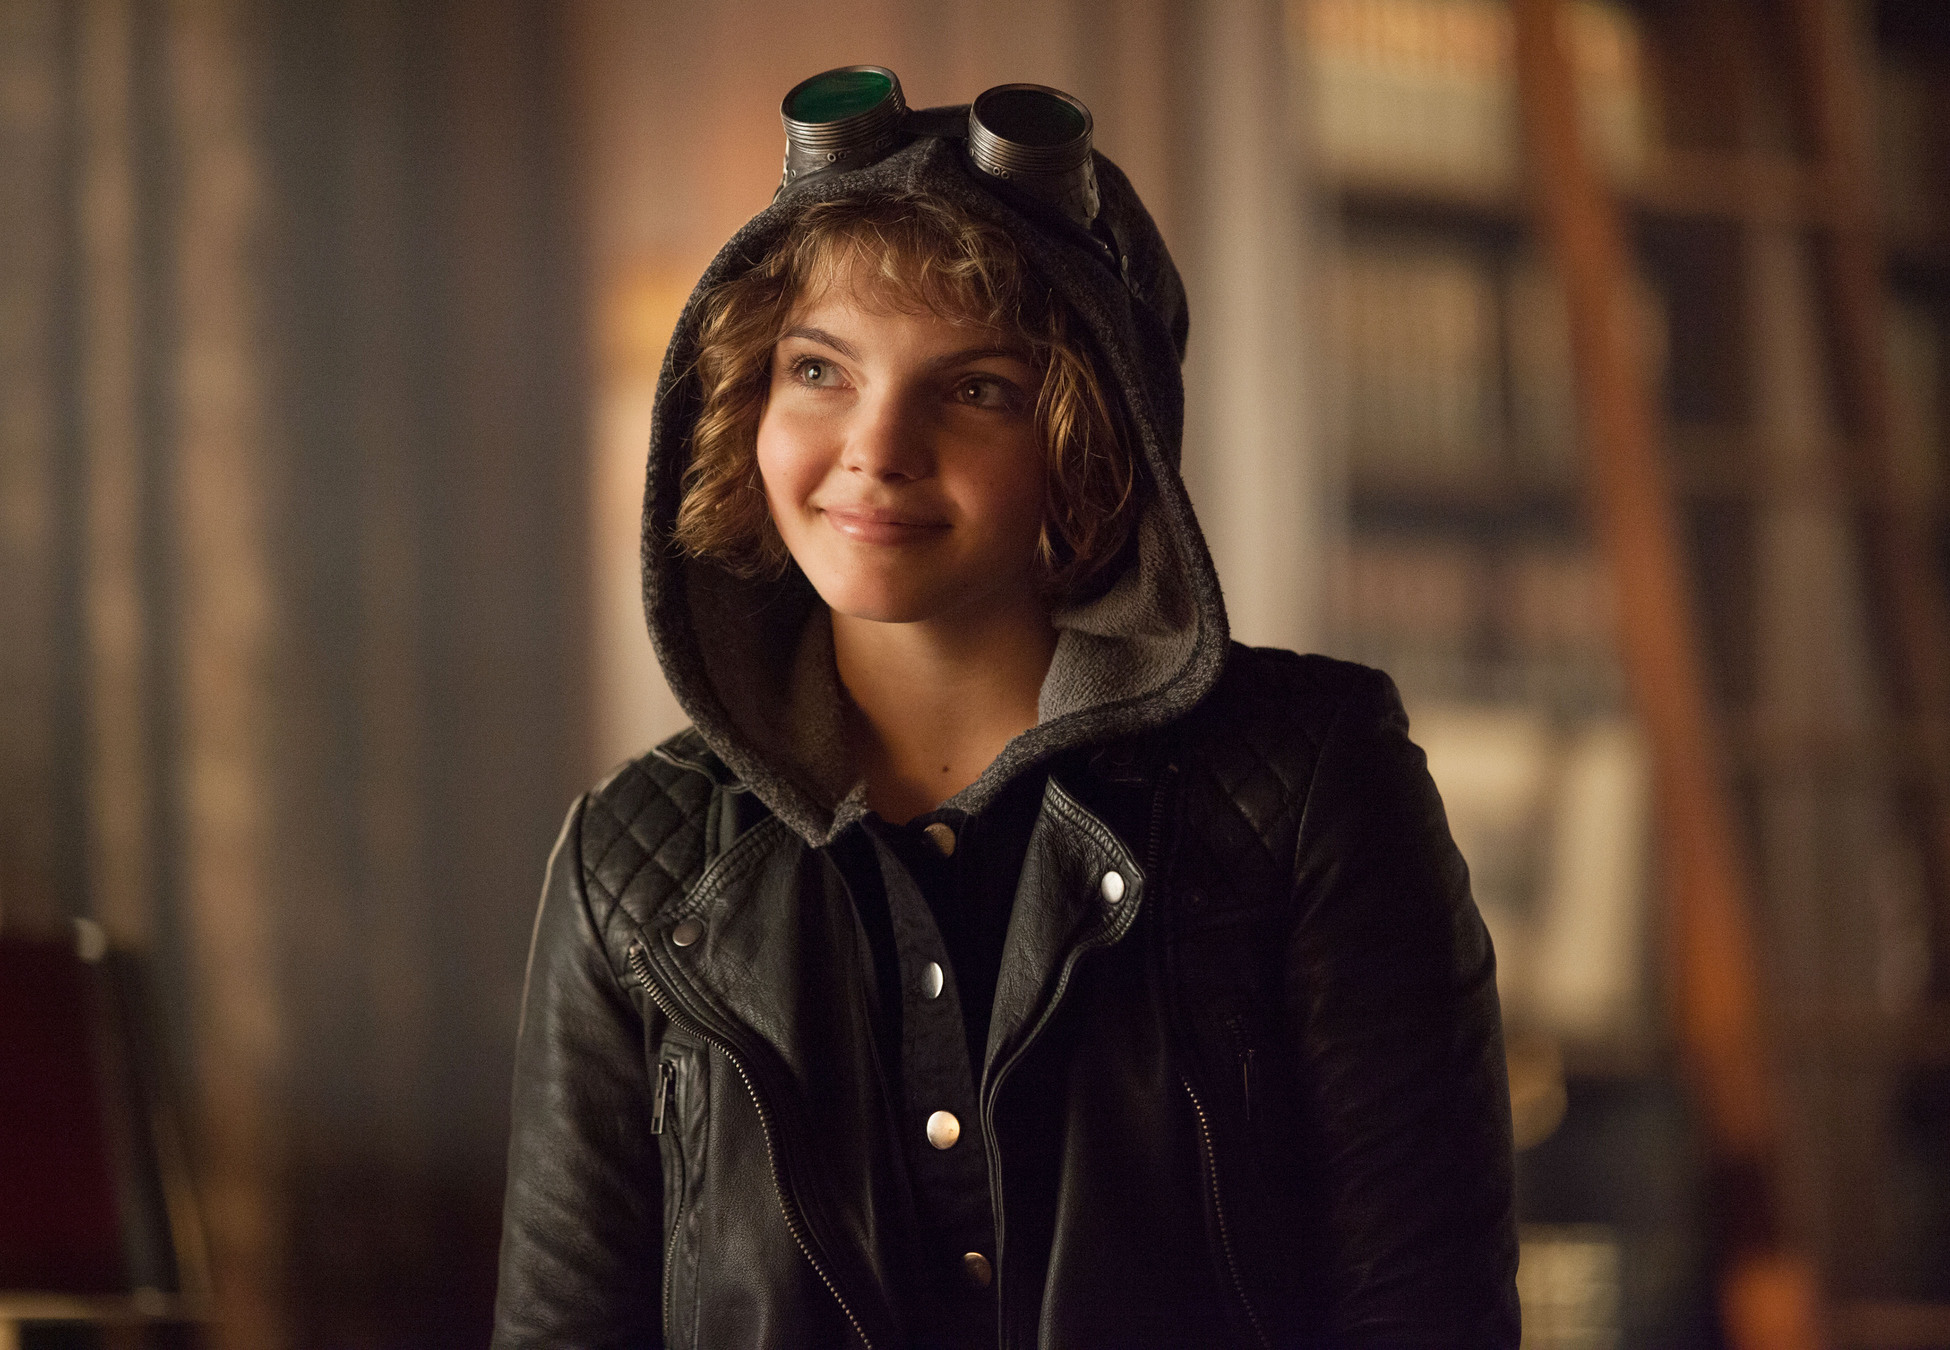 gotham single asian girls Selina kyle is a teenage girl and is a skilled street thief residing in gotham city known under the alias of cat, she is well known around the city through her connections in the criminal.